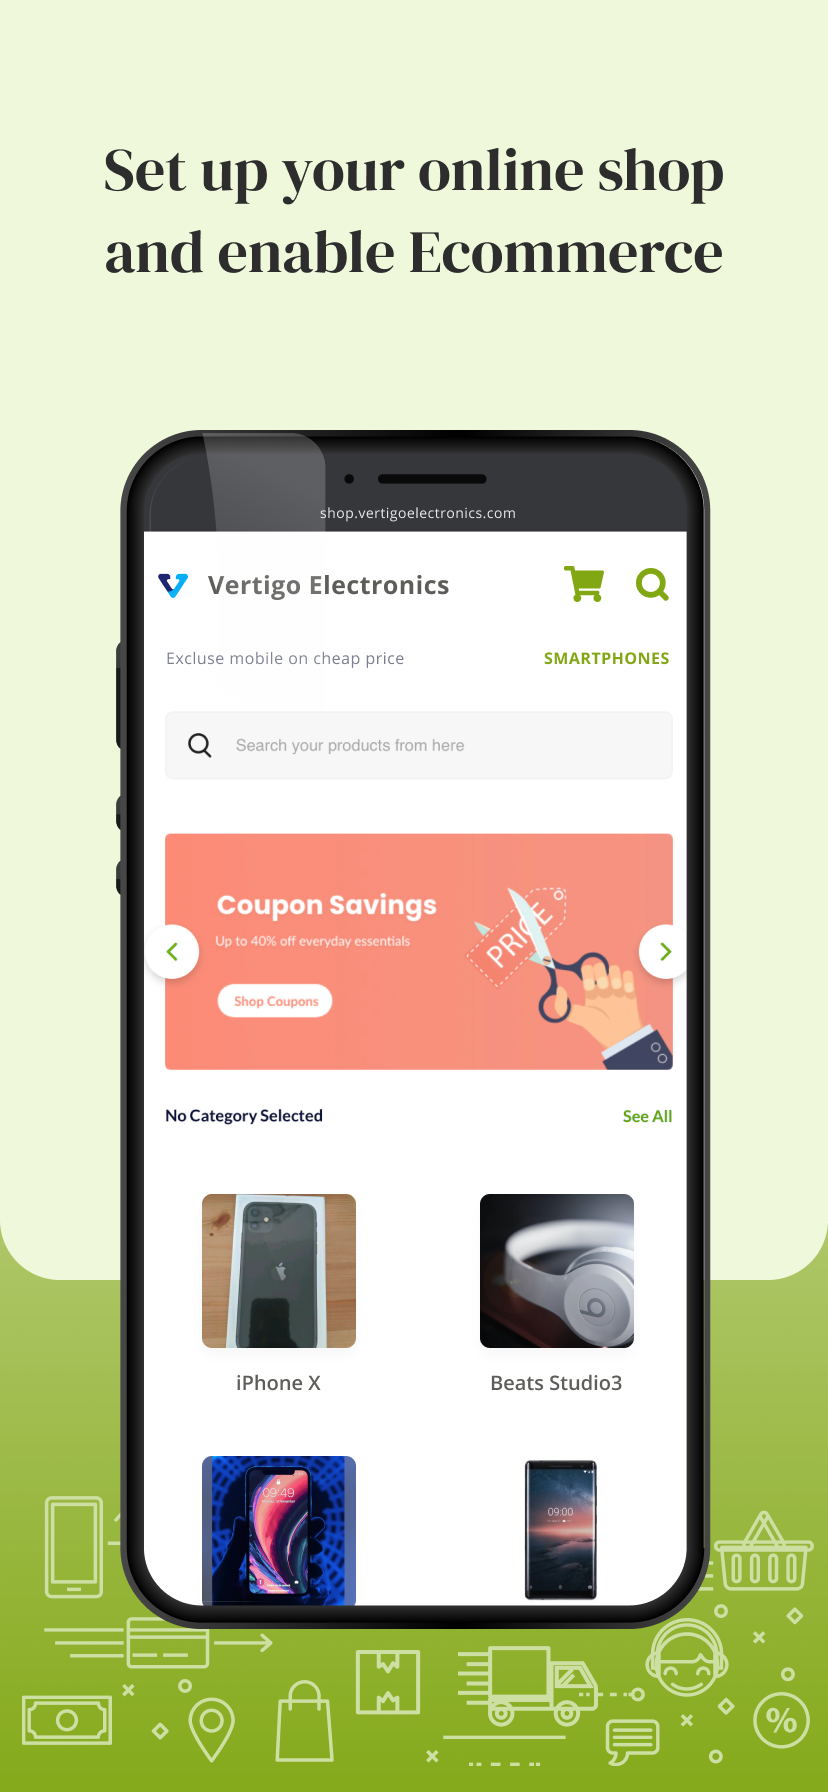 Create your online store and enable ecommerce and hyper-local delivery to customers near you.